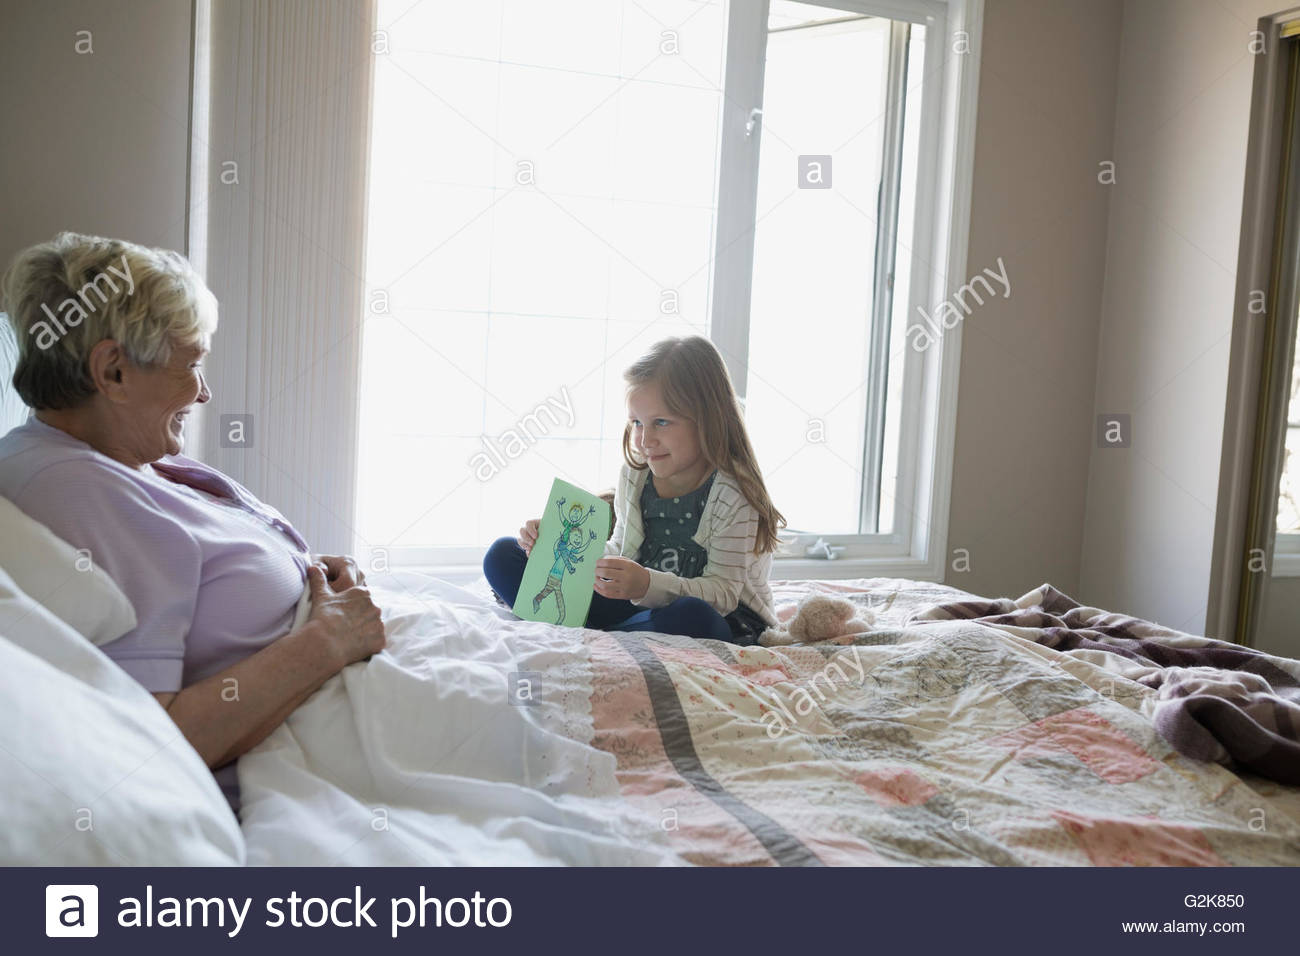 Granddaughter showing handmade drawing to grandmother in bed Stock Photo